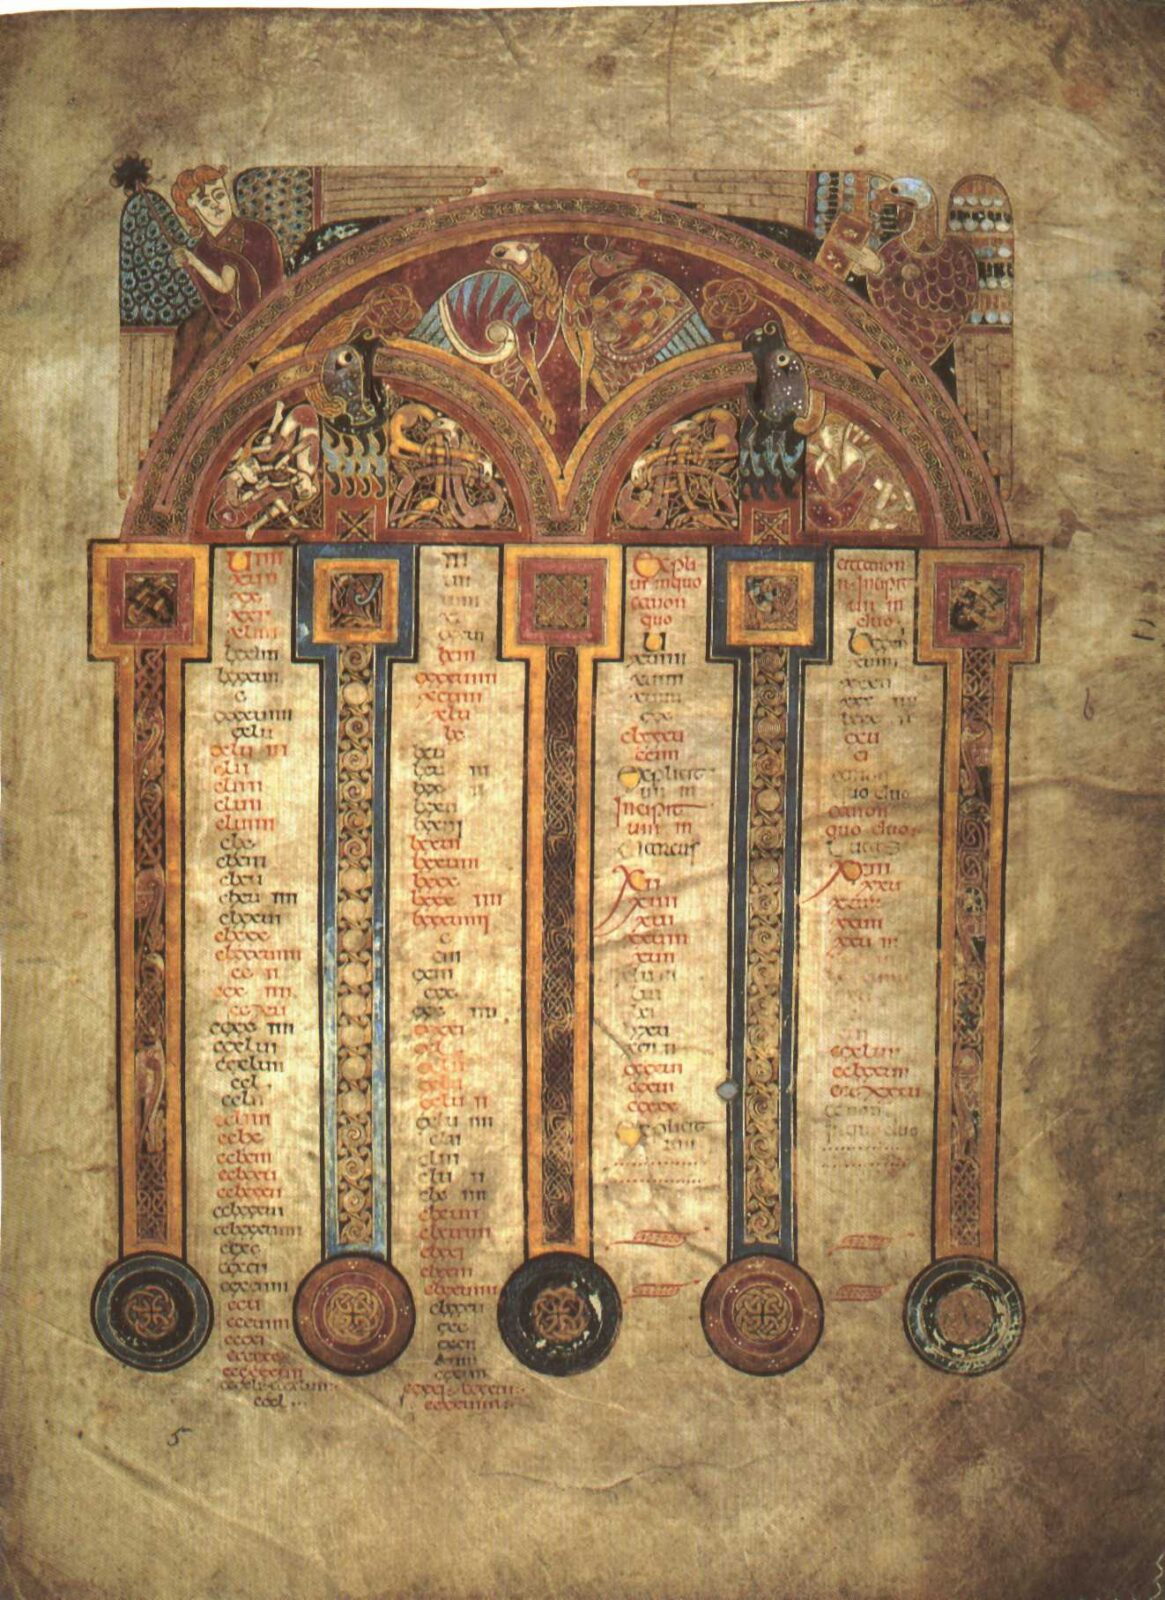 Trinity College Library Book of Kells Library of Trinity College